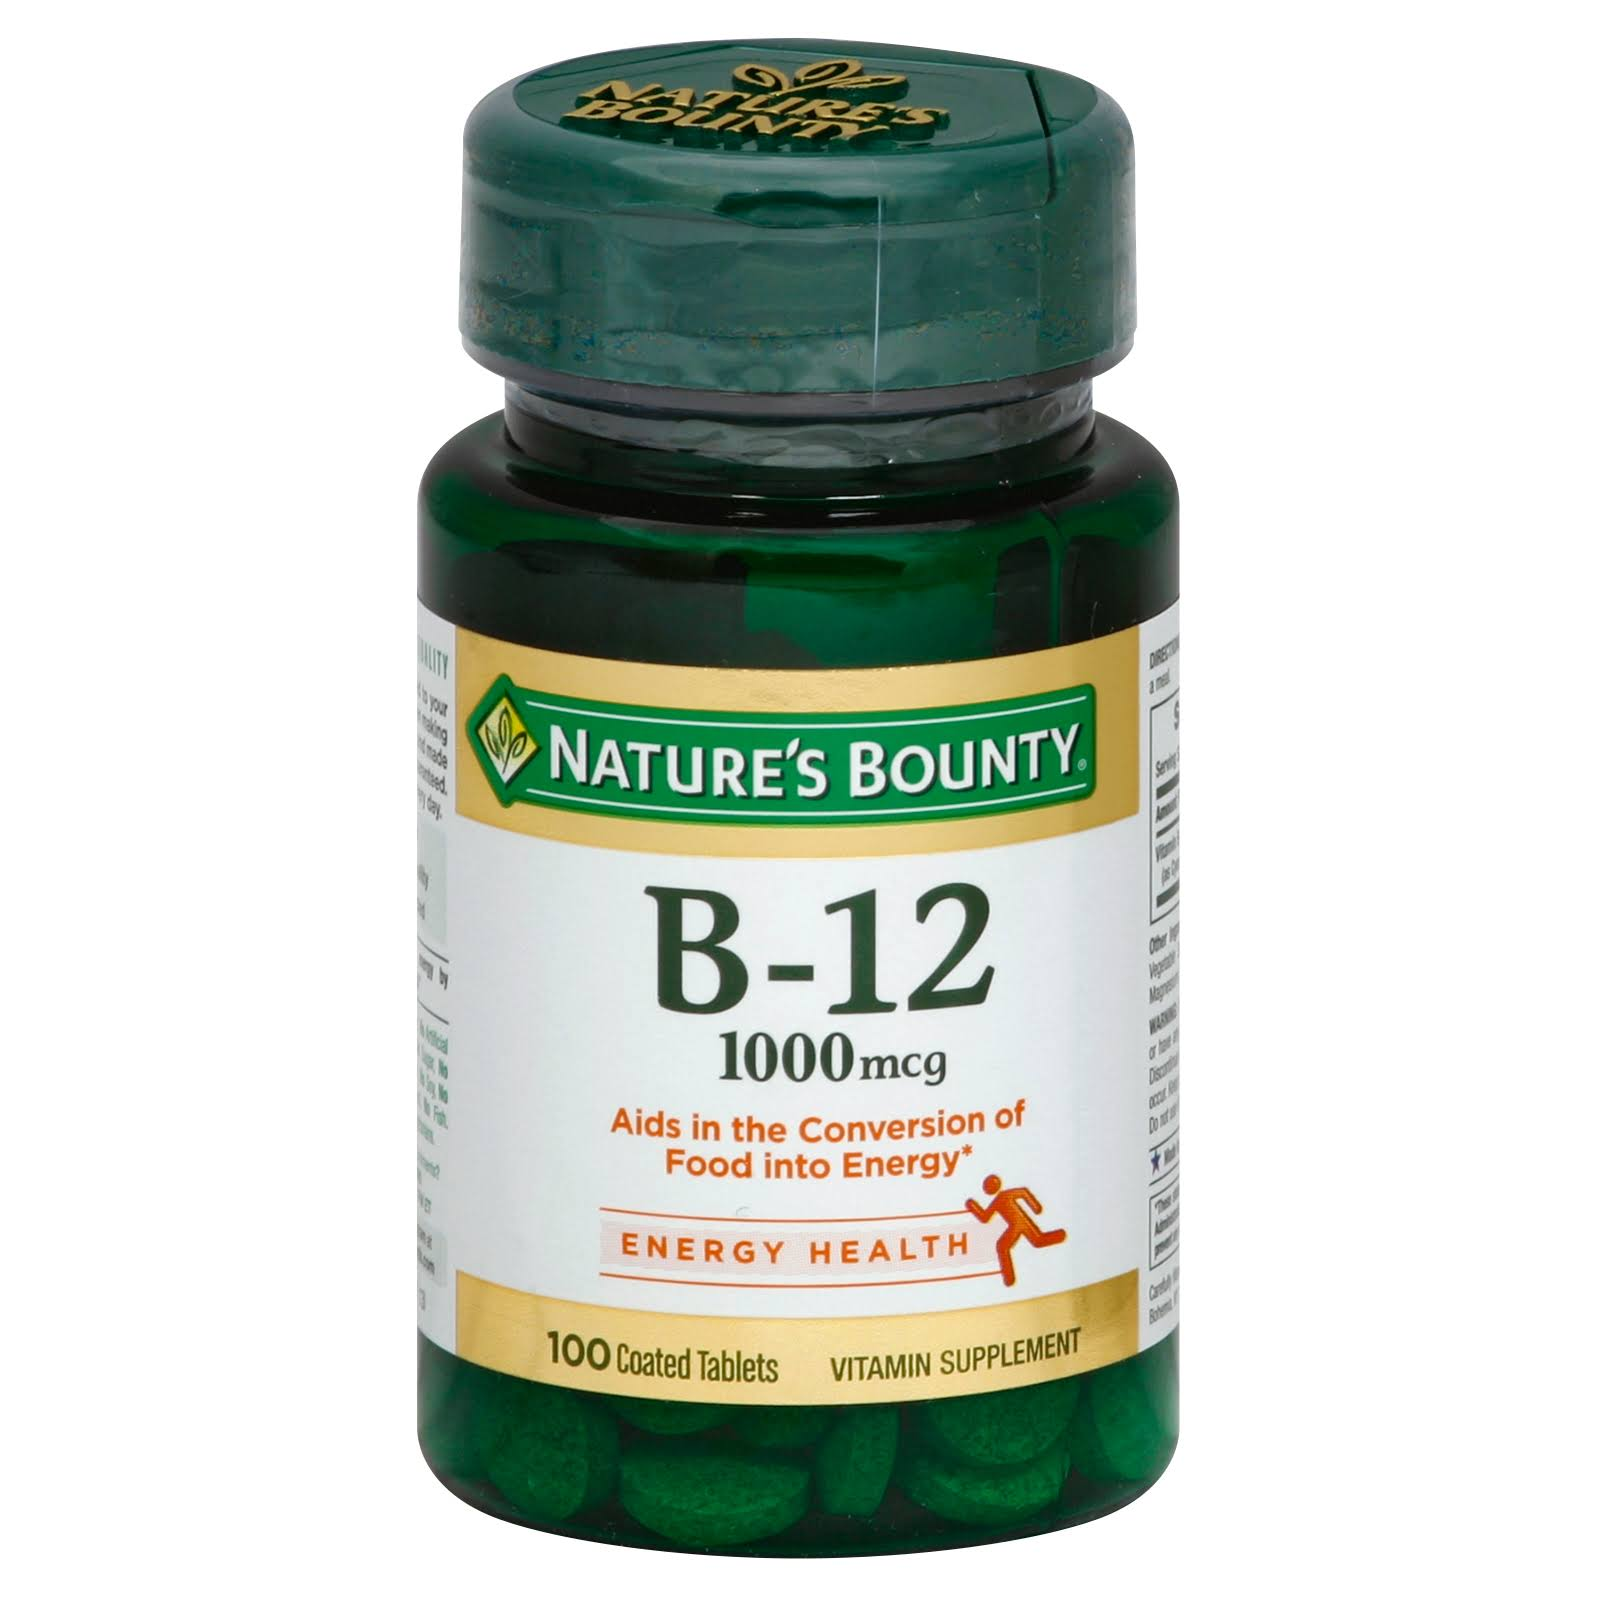 Nature's Bounty Natural Vitamin B12 Supplement - 100 Tablets